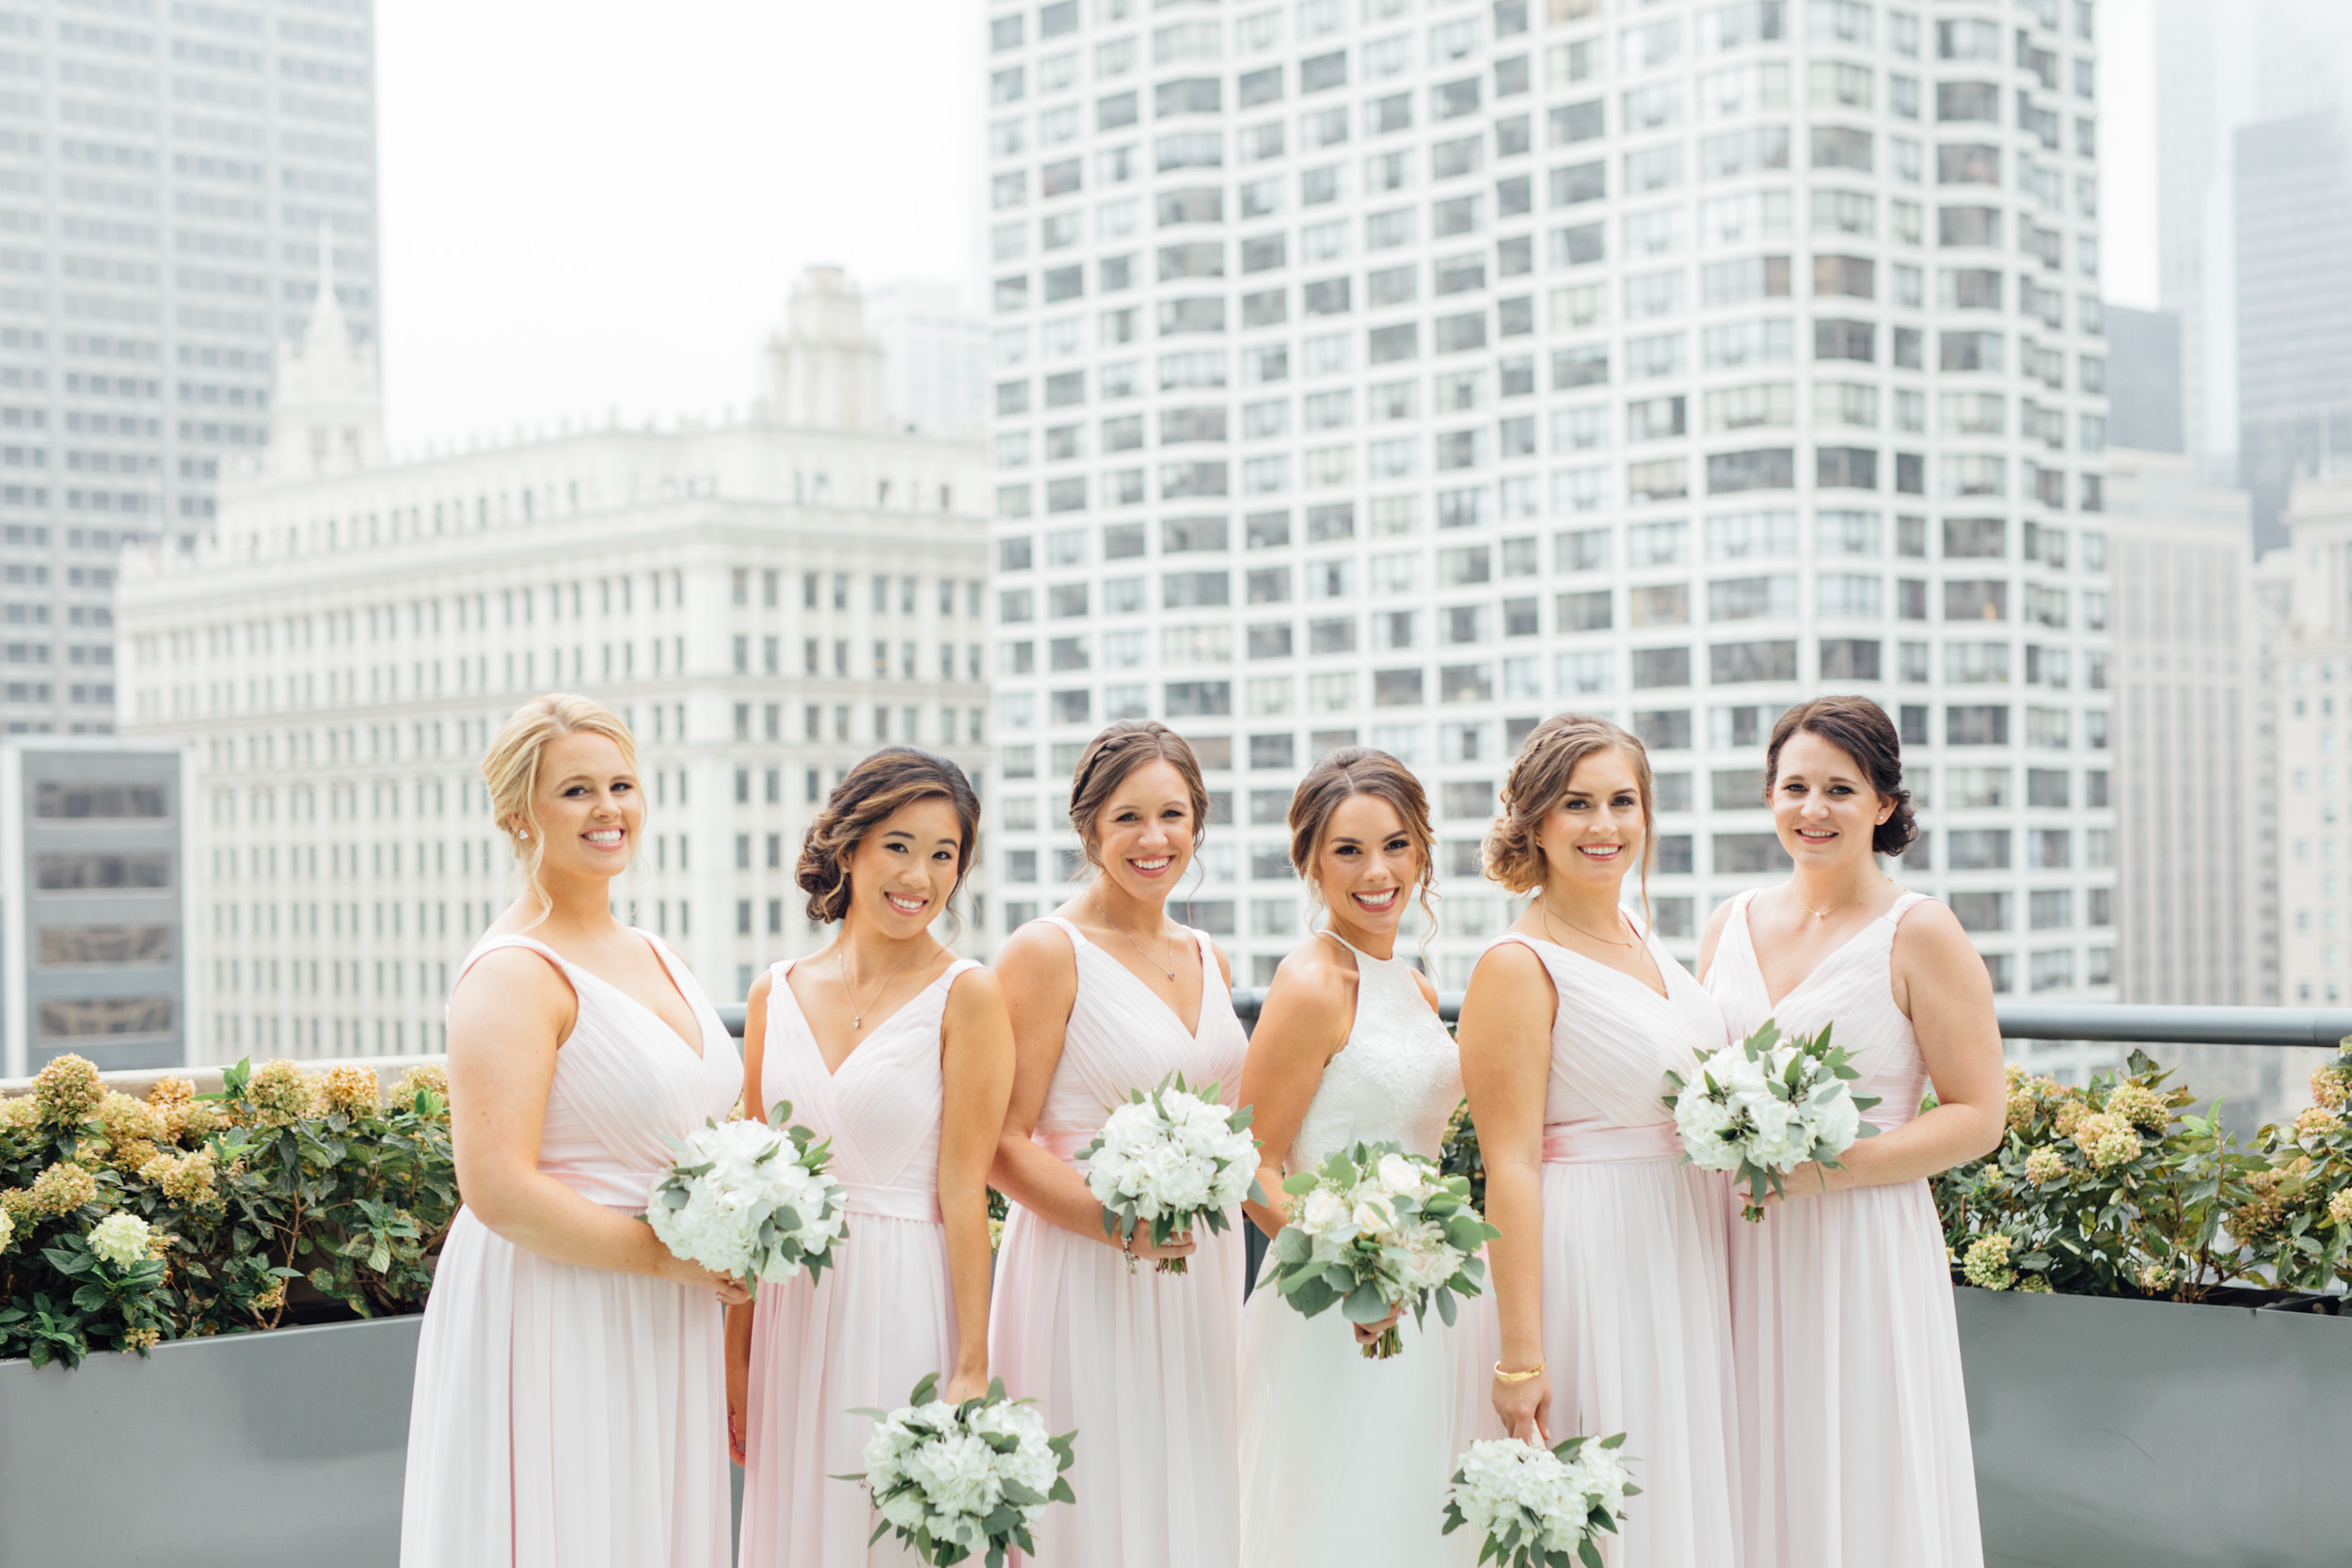 Downtown Chicago Wedding_Polly C Photography 1706144214.jpg